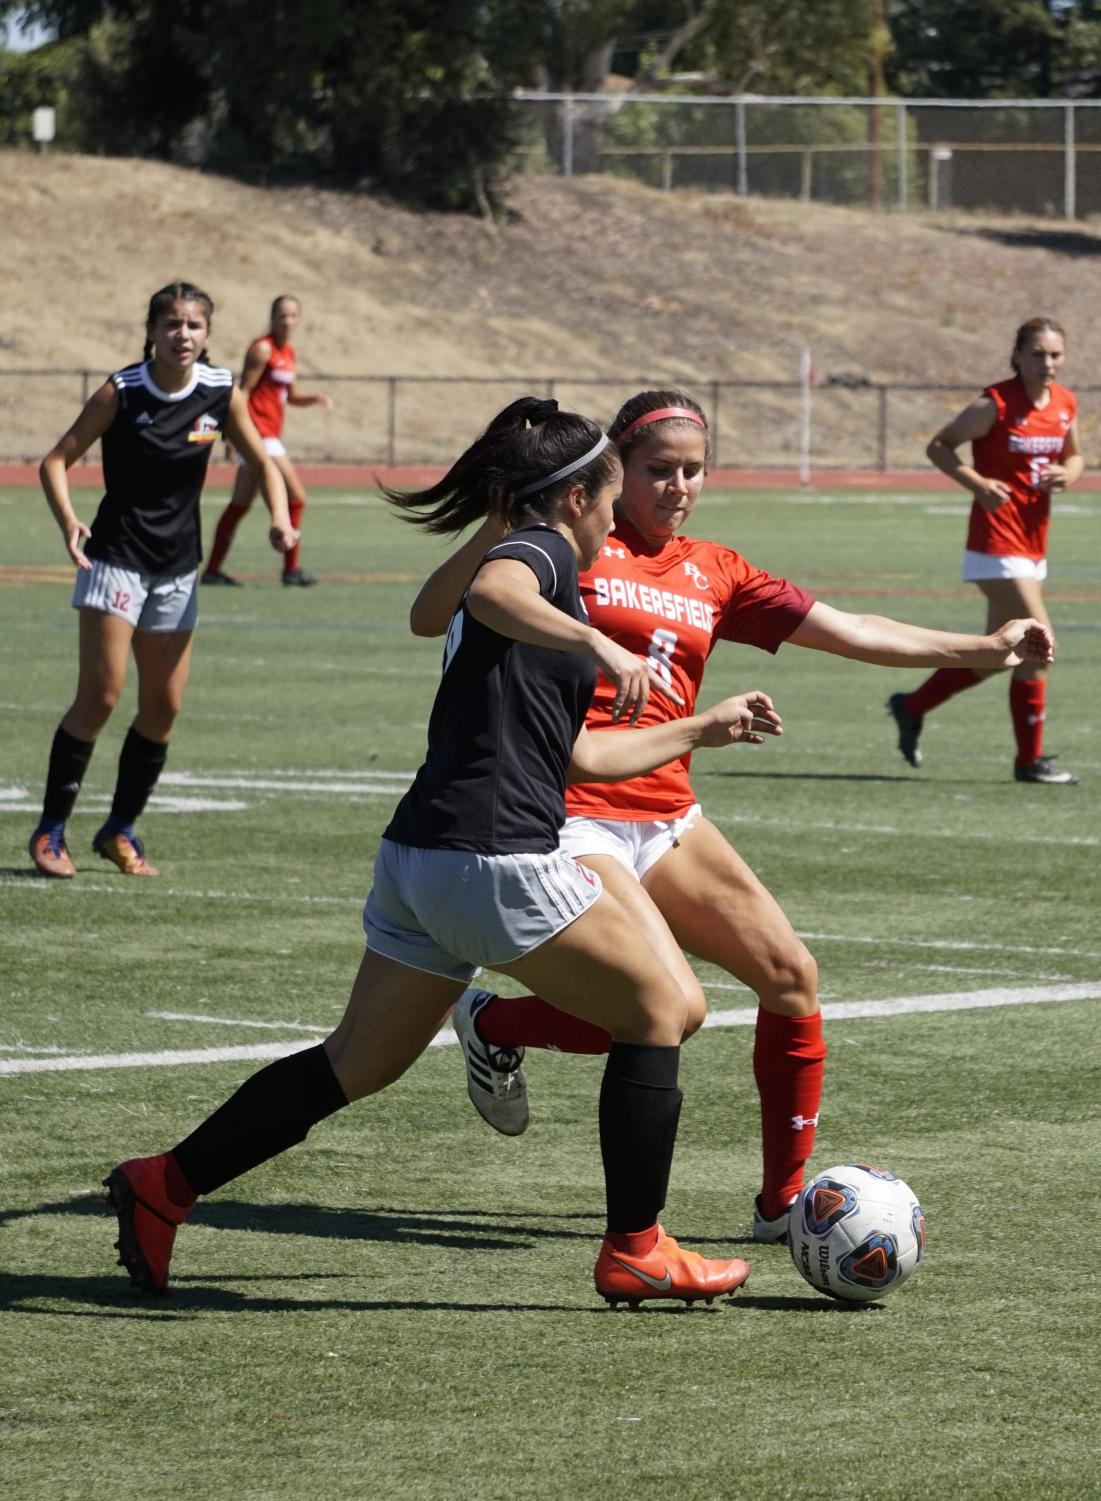 Nayeli Martinez, 26, defends the ball against a Bakersfield College offensive player during a soccer game on August 30, 2019 at Los Medanos College in Pittsburg, California.